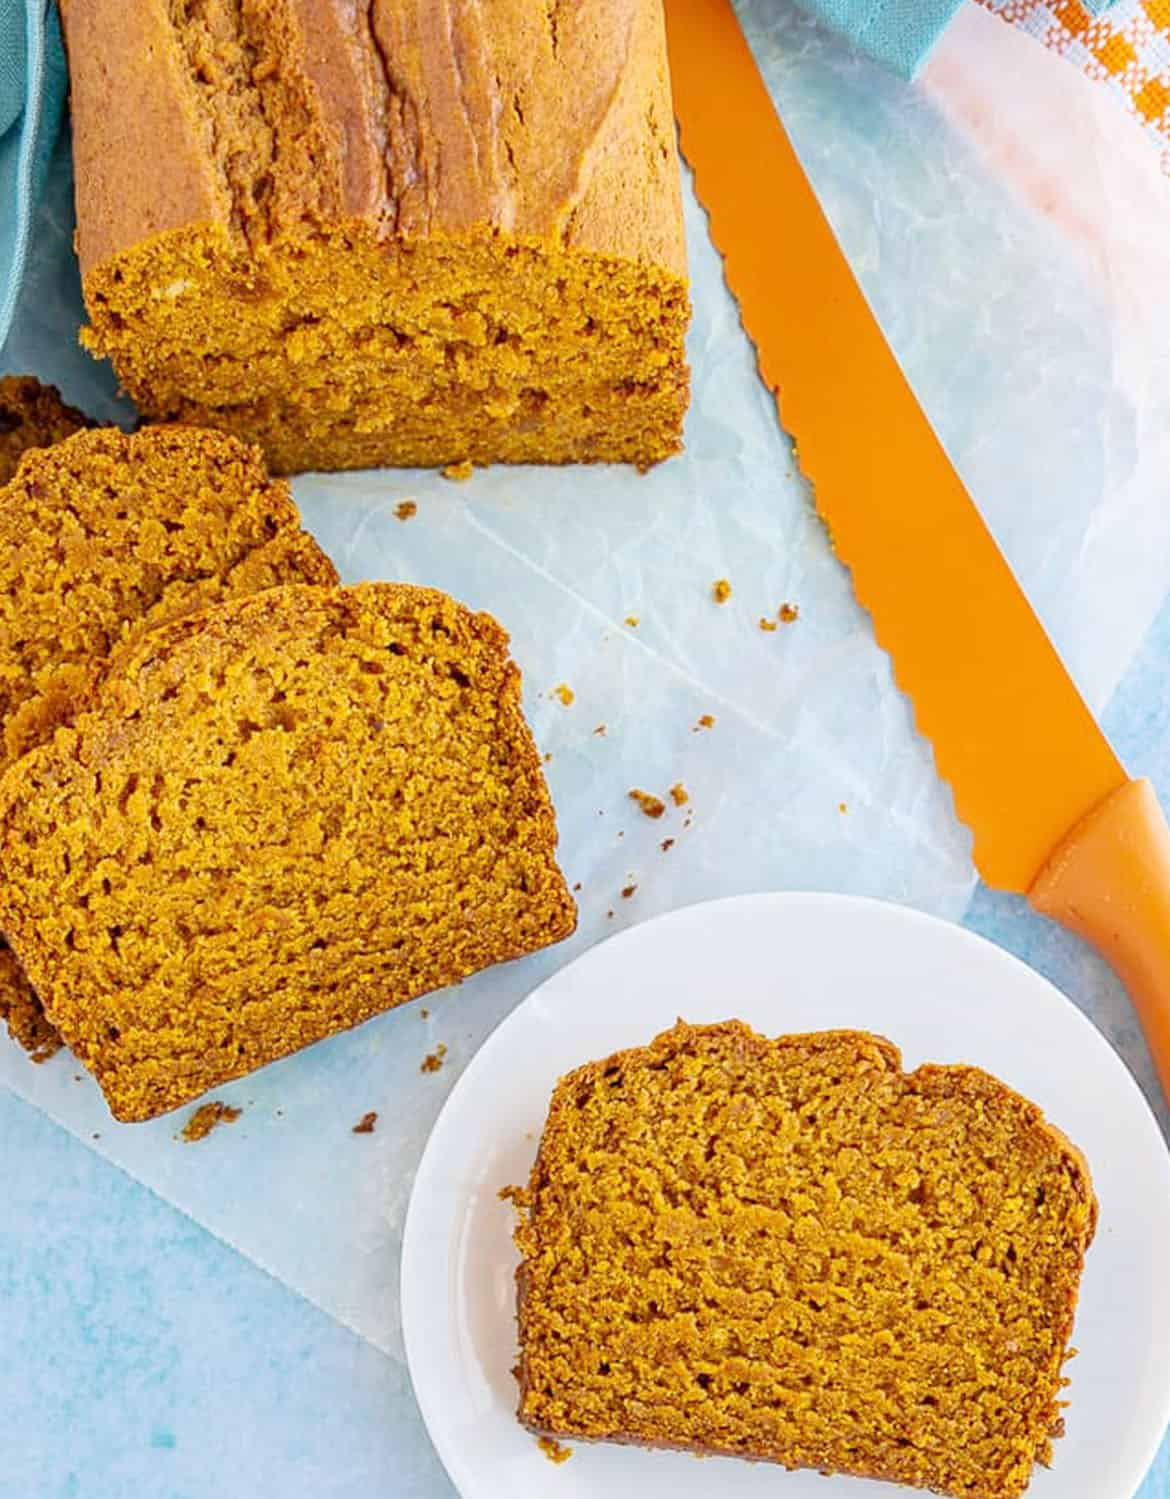 Vegan pumpkin bread cut into slices with an orange knife in the background - Love from The Oven